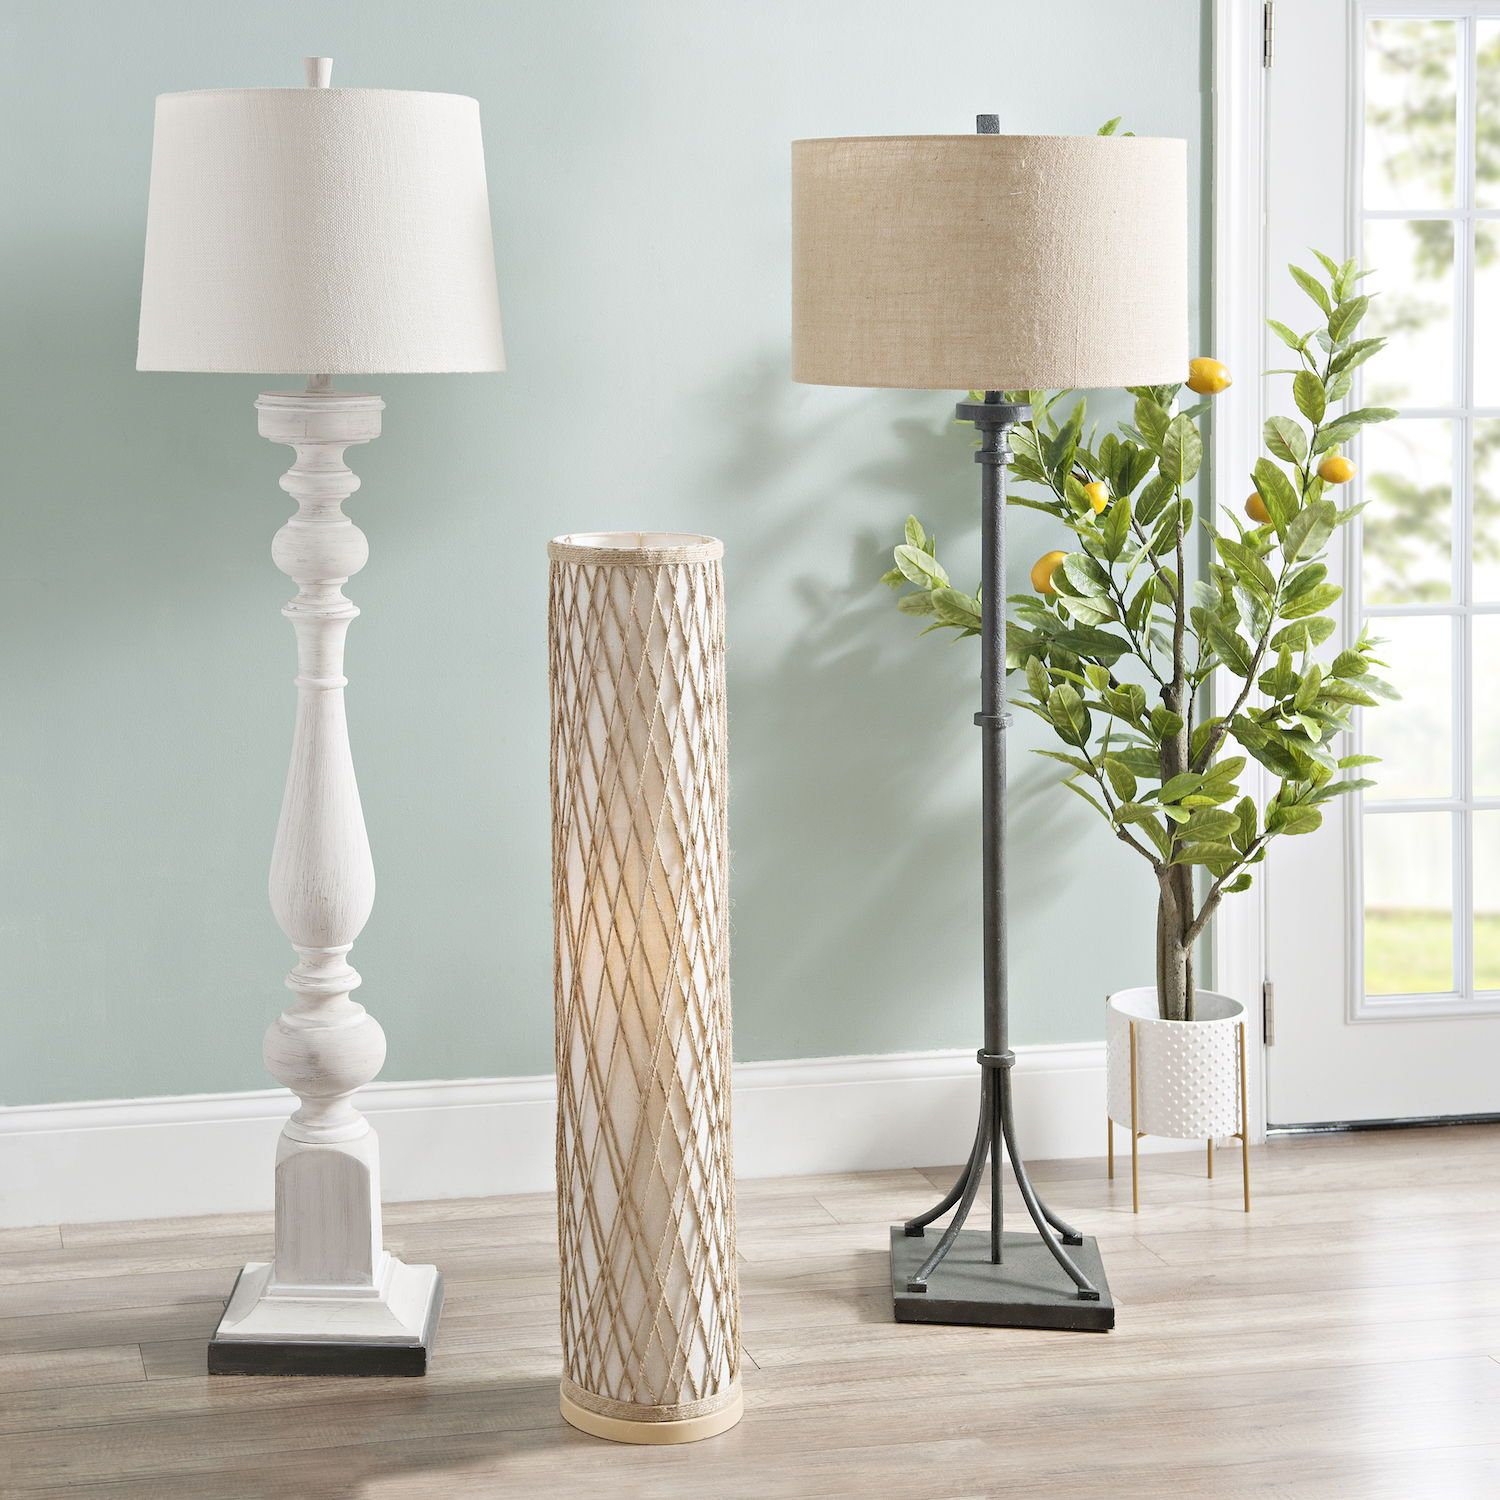 Beachy Vintage Rustic Or Modern We Ve Got The Floor Lamp You